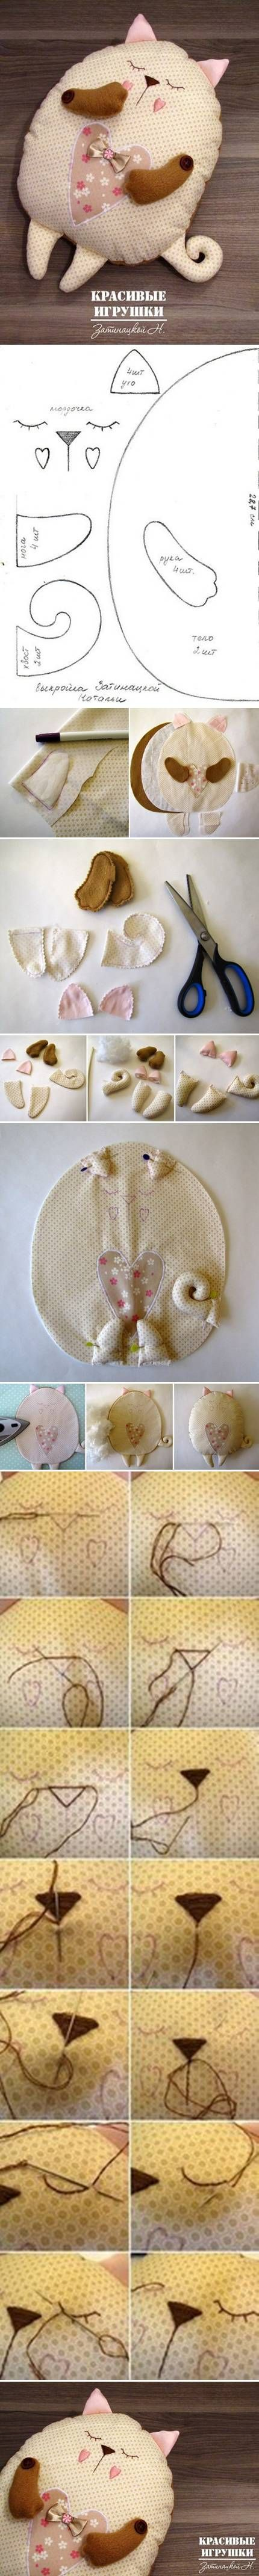 DIY Soft Sew Fabric Cat DIY Soft Sew Fabric Cat